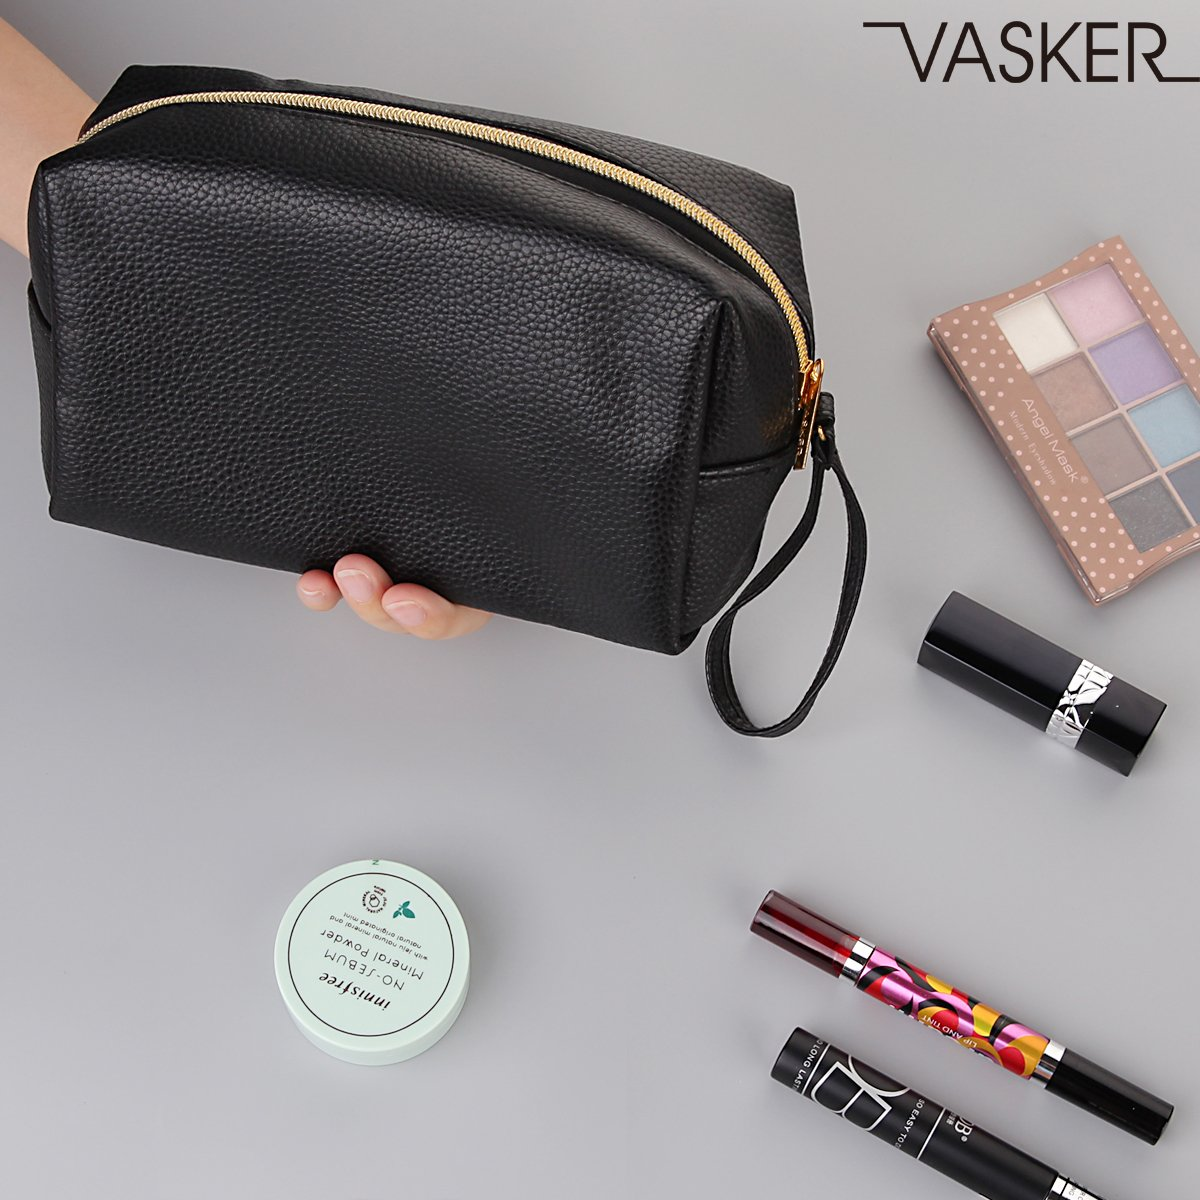 VASKER PU Leather Makeup Bag Handy Cosmetic Pouch Travel Portable Handbag Purse Toiletry Storage Bag Large Organizer with Zipper Women by VASKER (Image #8)